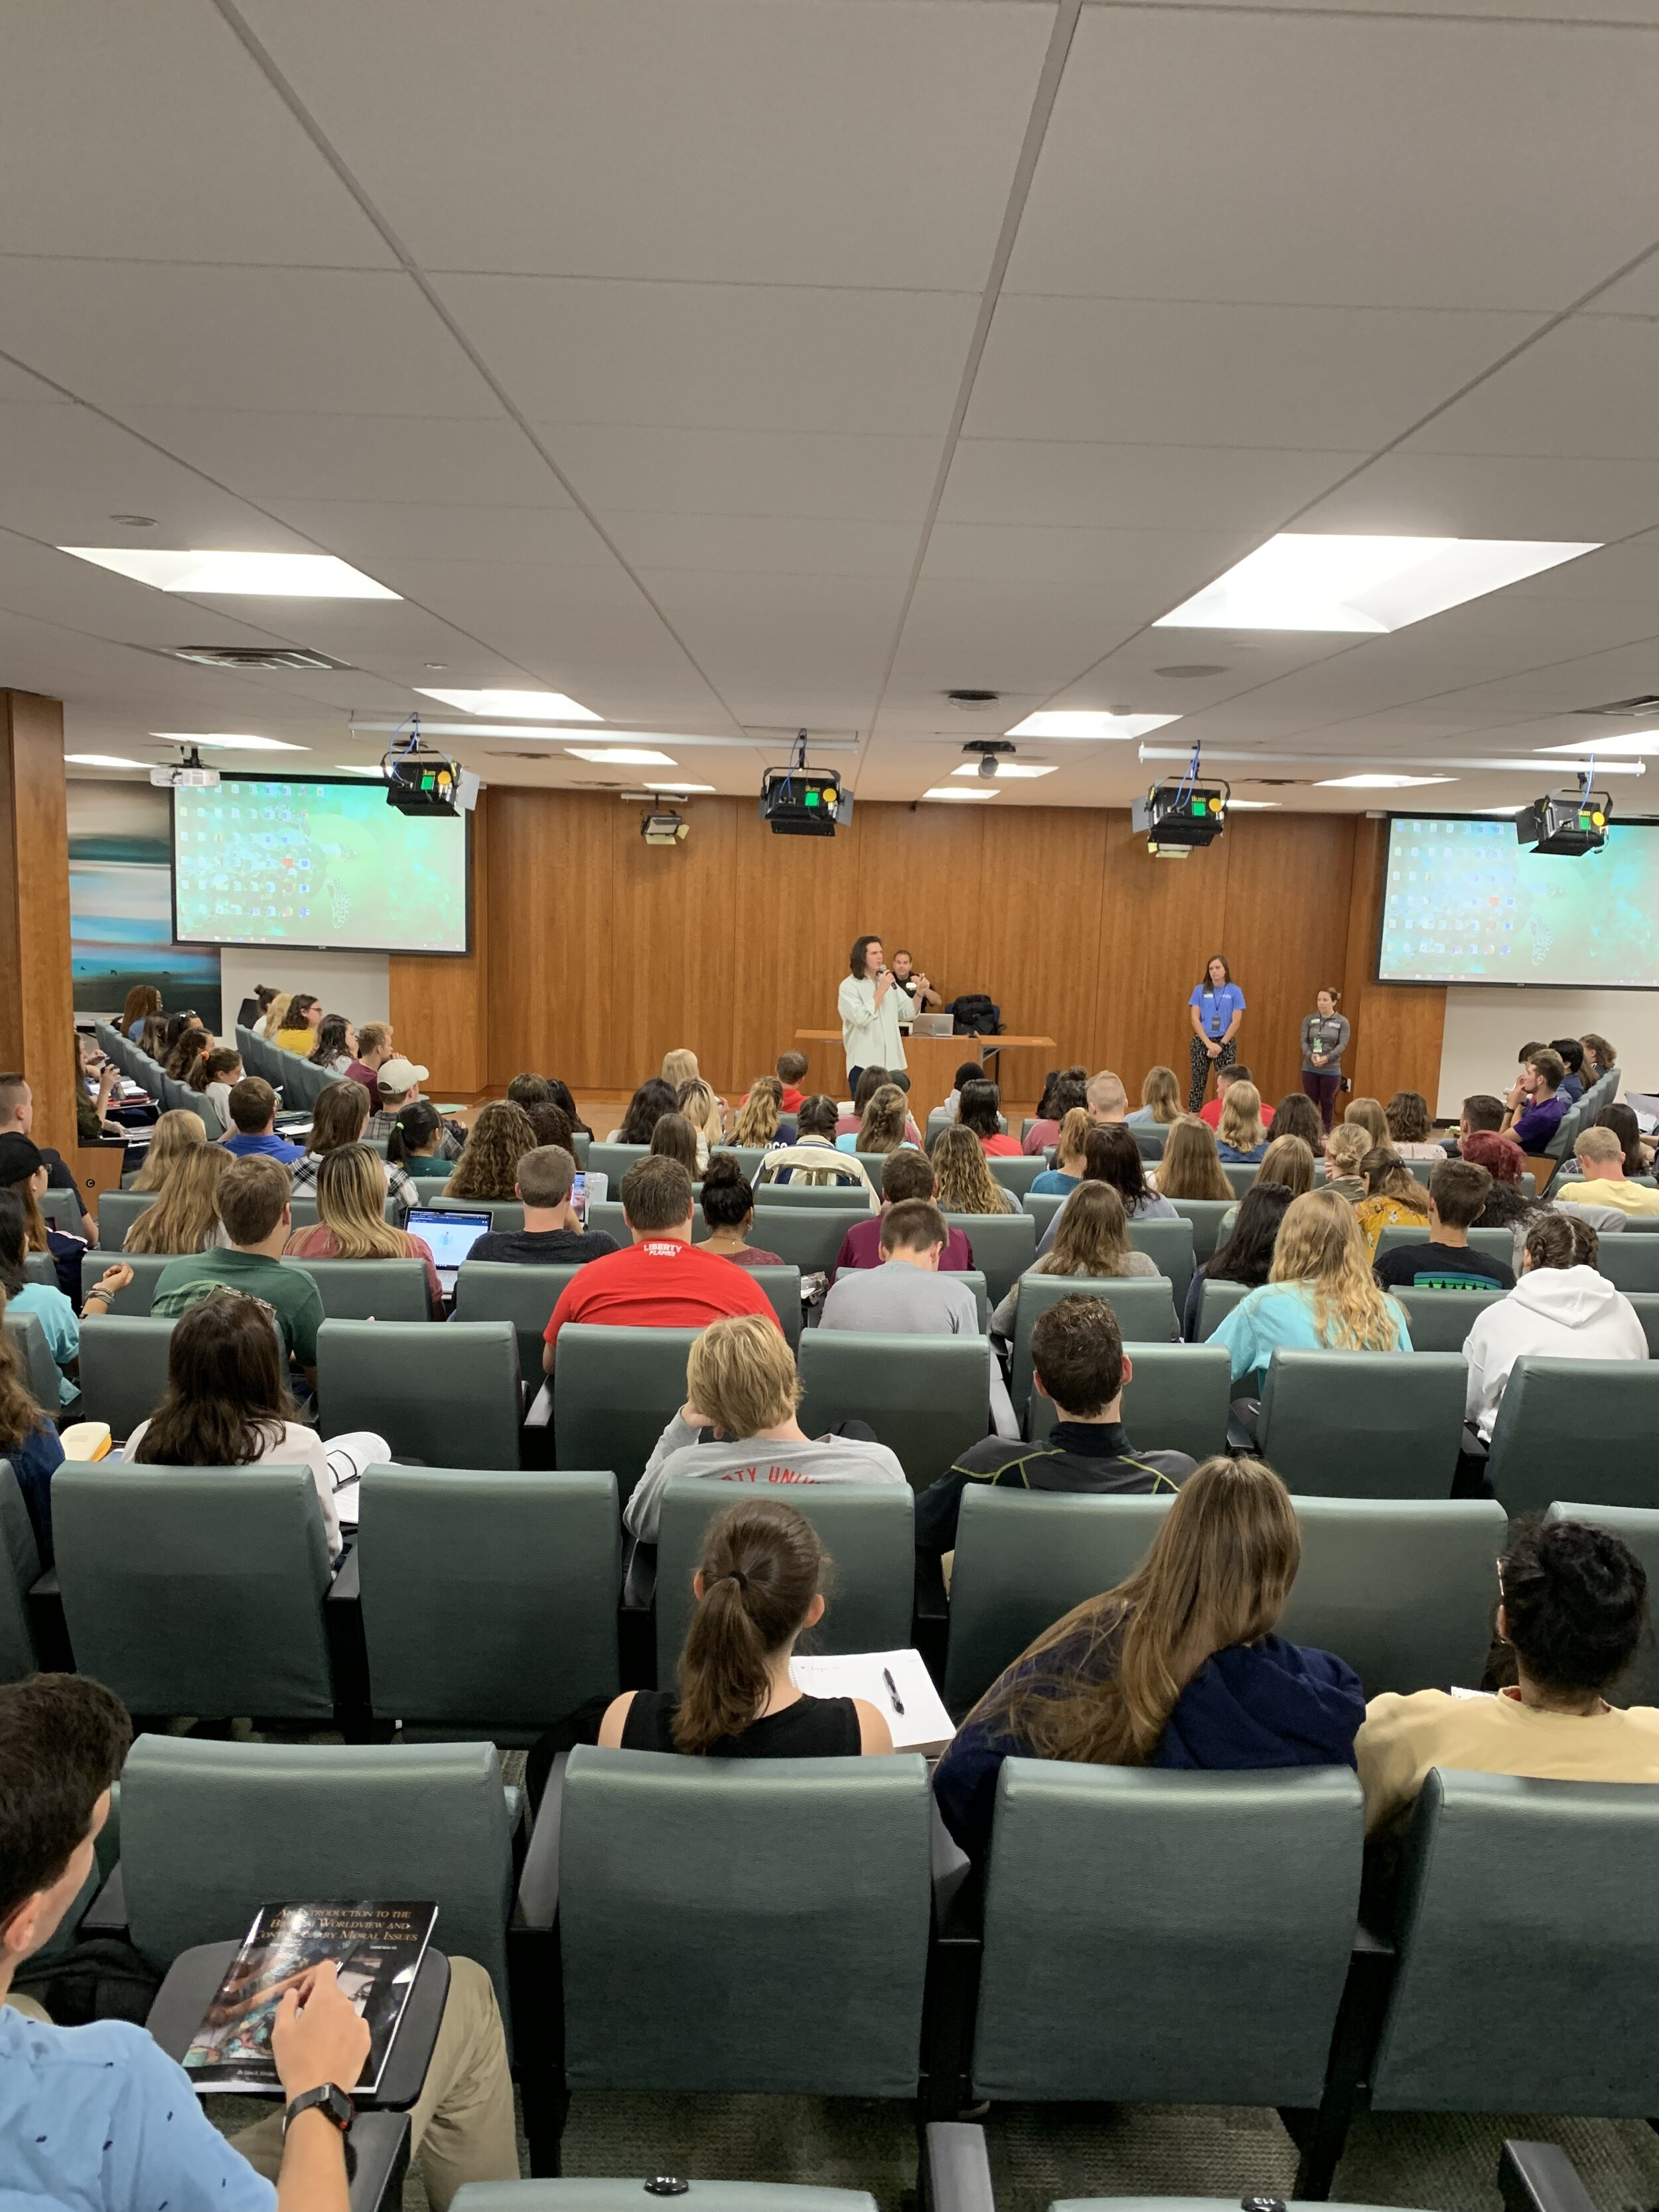 Sharing my heart and casting vision at Liberty University to a classroom of around 400 students.